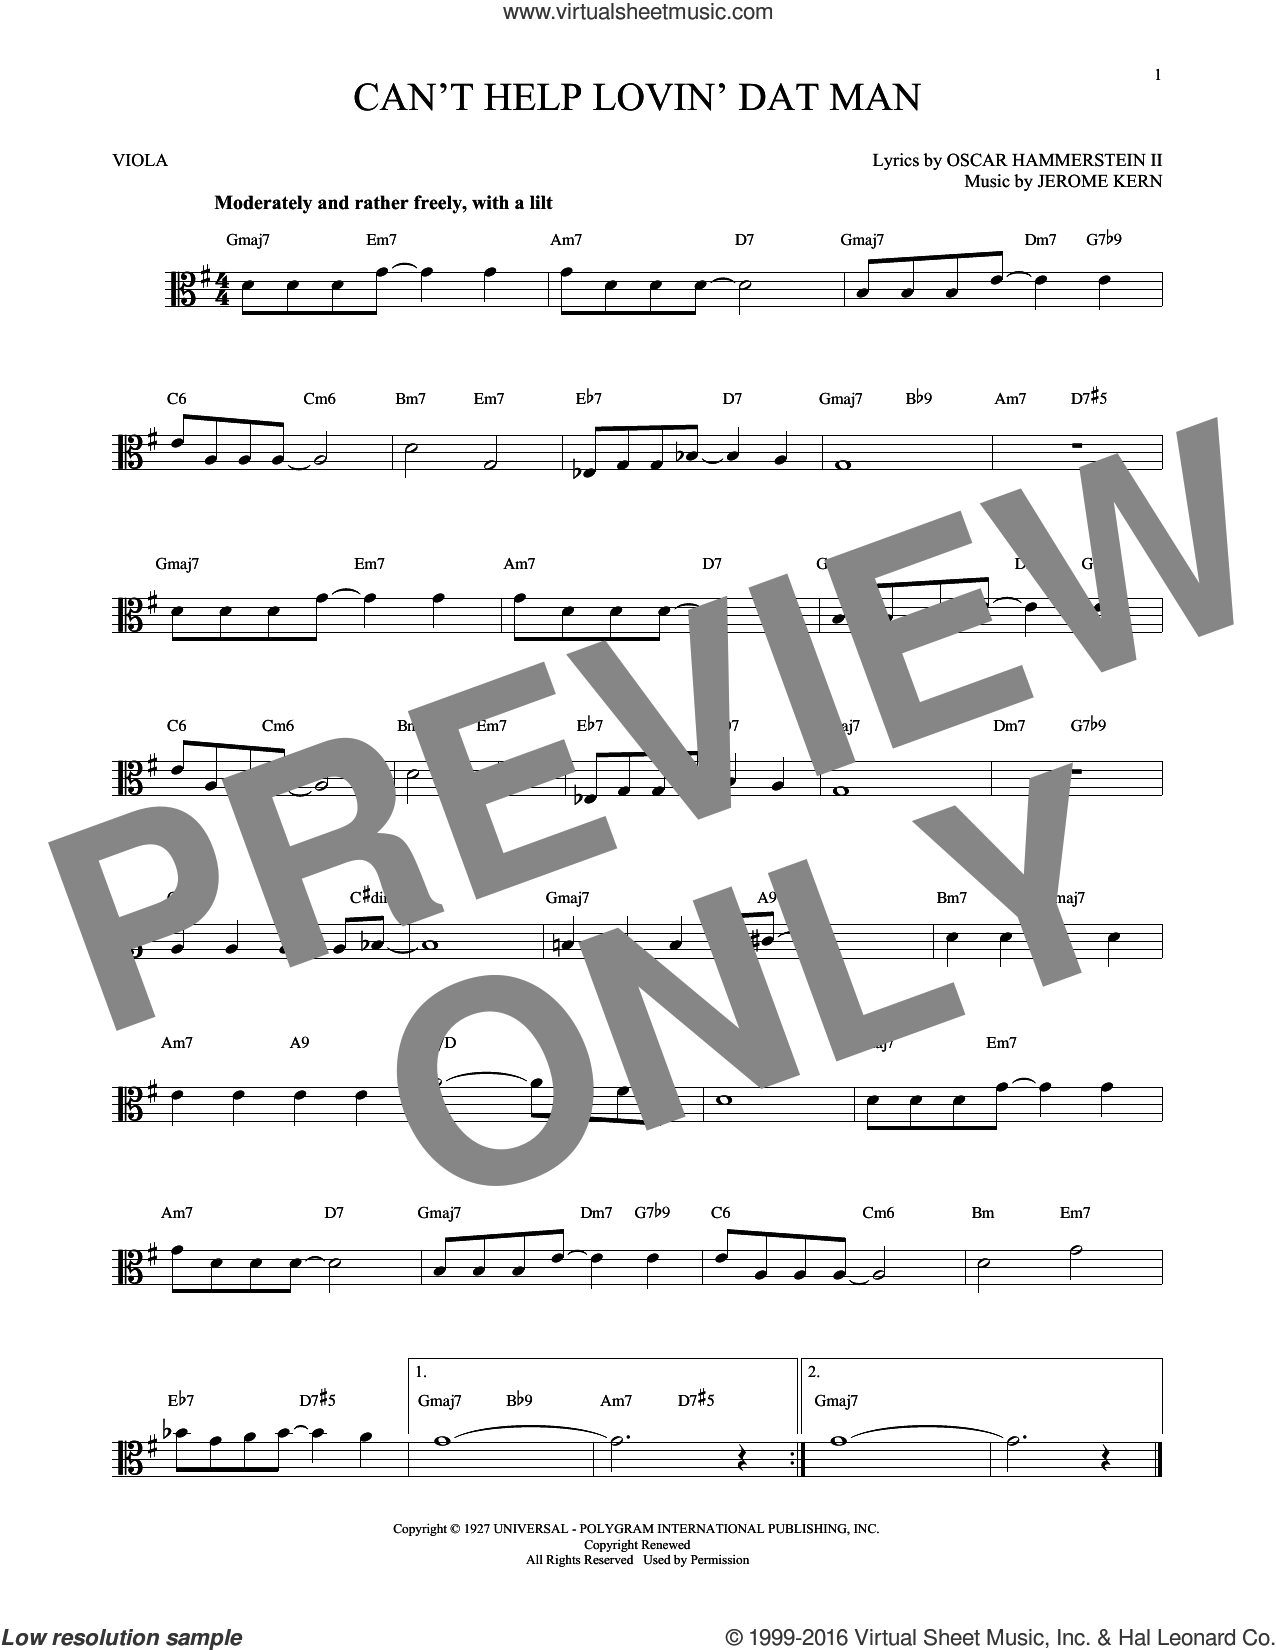 Can't Help Lovin' Dat Man sheet music for viola solo by Oscar II Hammerstein, Helen Morgan and Jerome Kern. Score Image Preview.